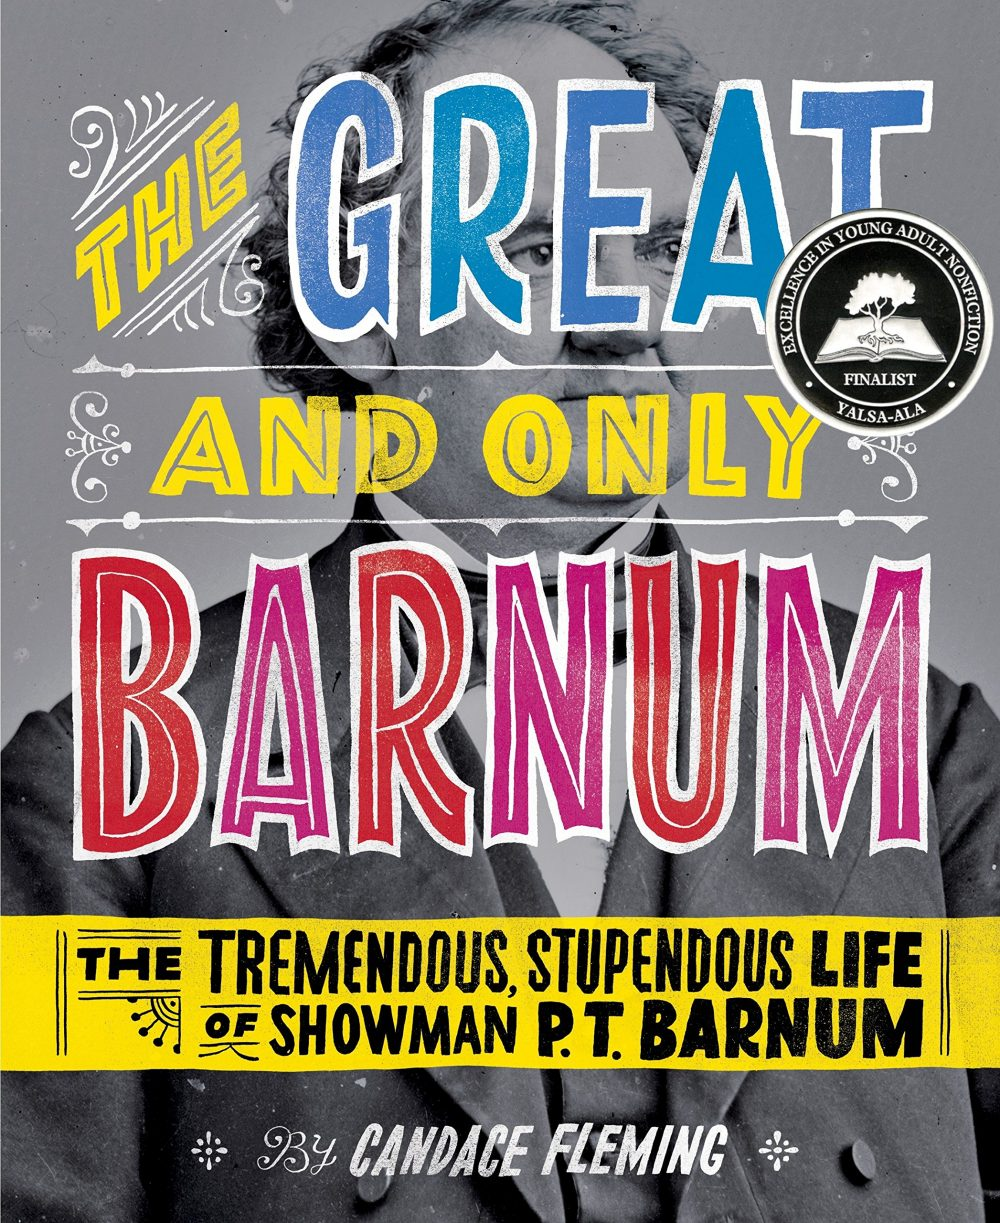 The Great and Only Barnum